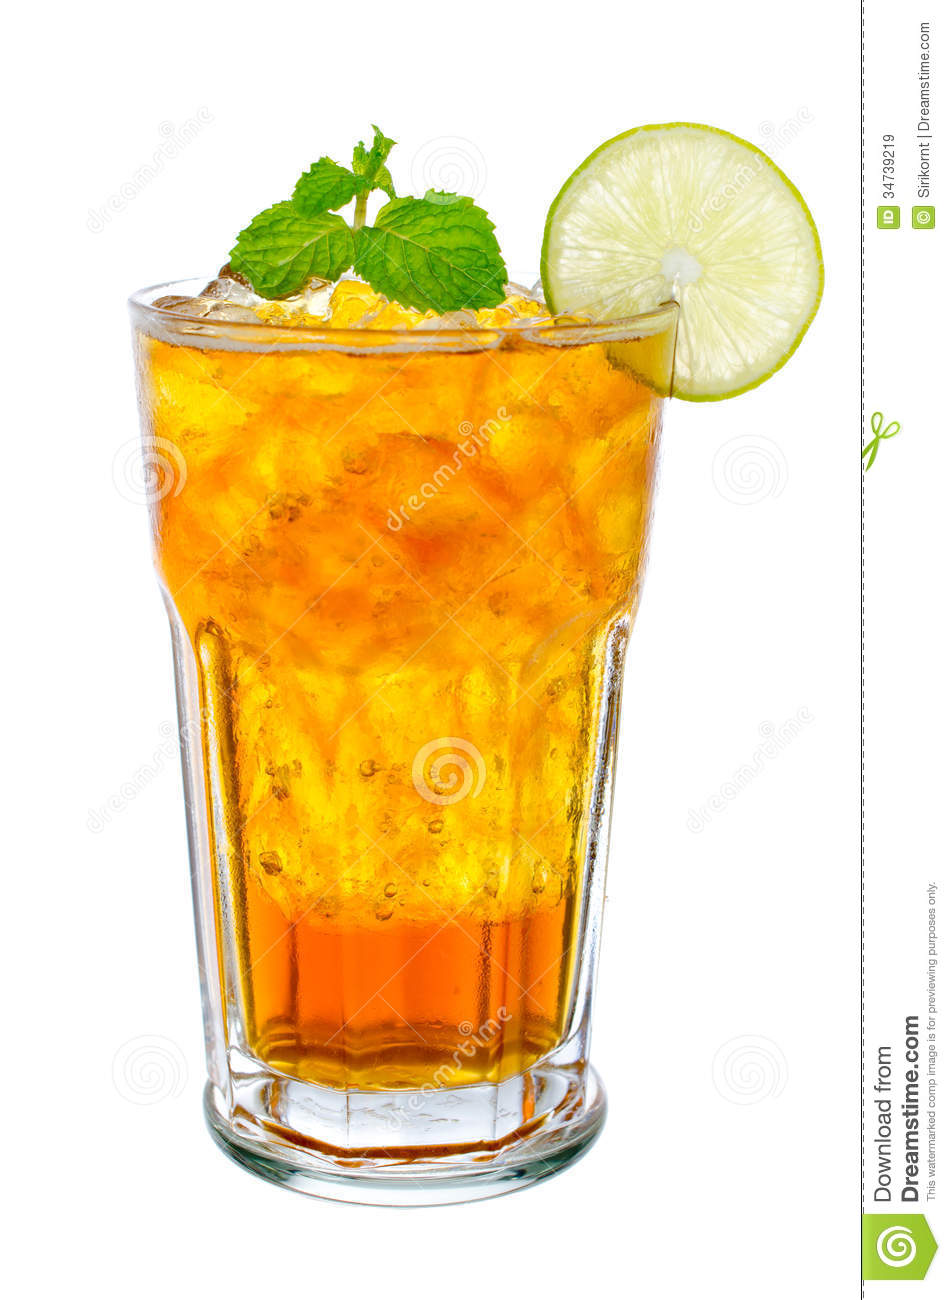 Iced Tea Clipart Glass Of Ice Tea With Lemon On